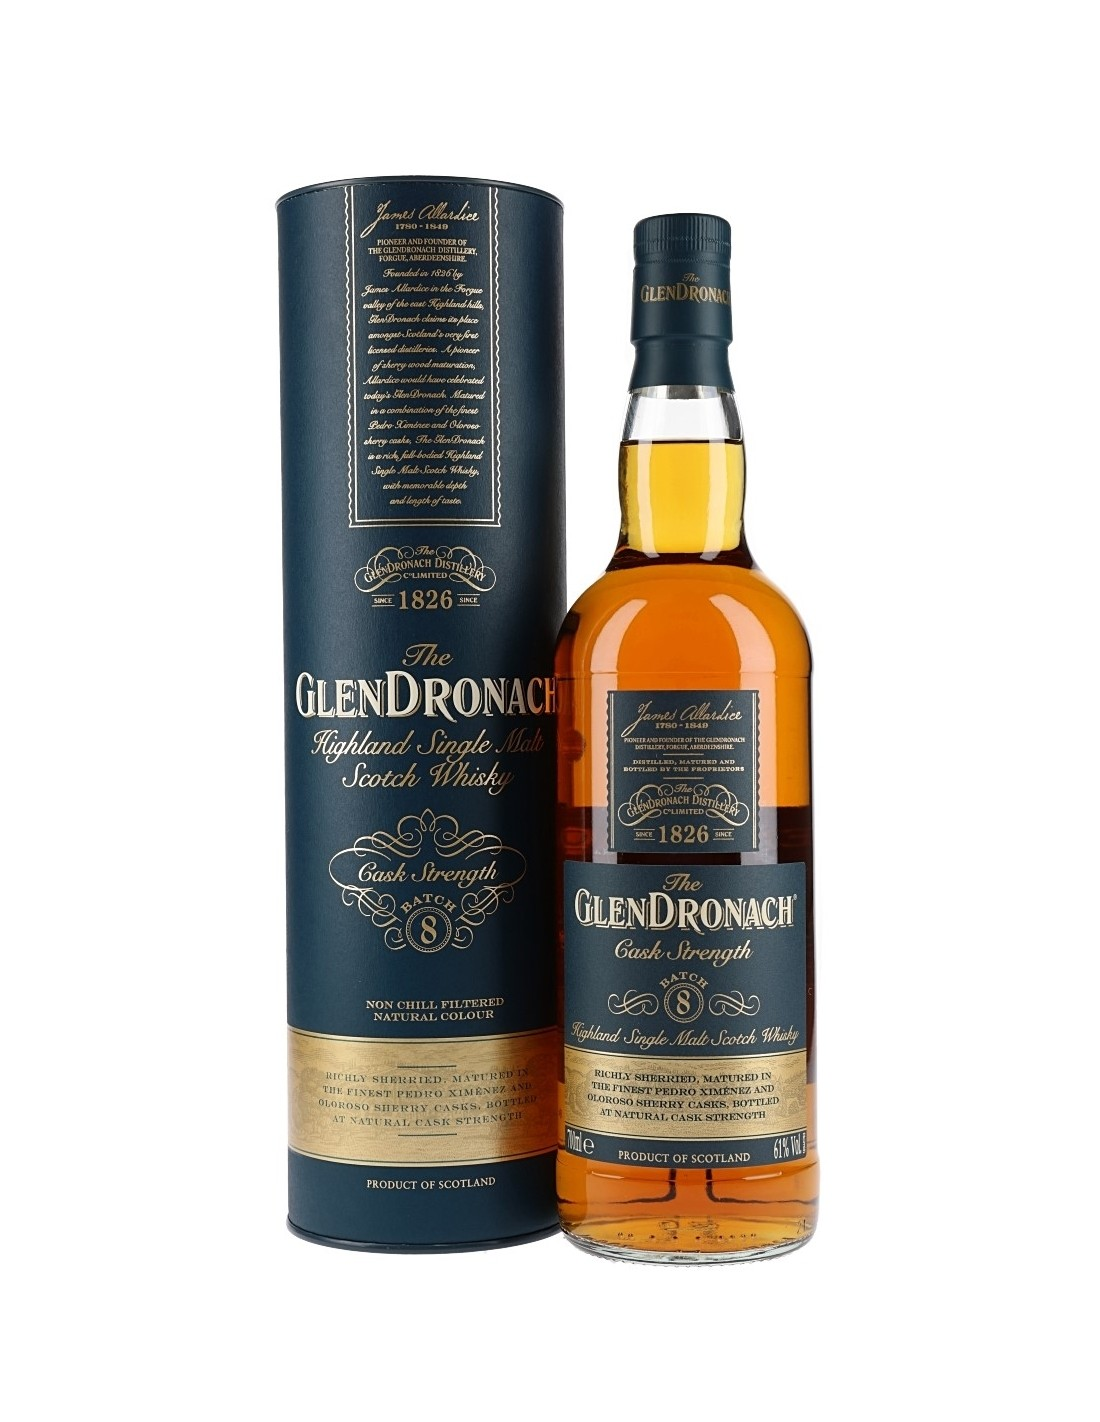 Whisky Single Malt Glendronach Cask Strenght, 61% alc., 0.7L, Scotia